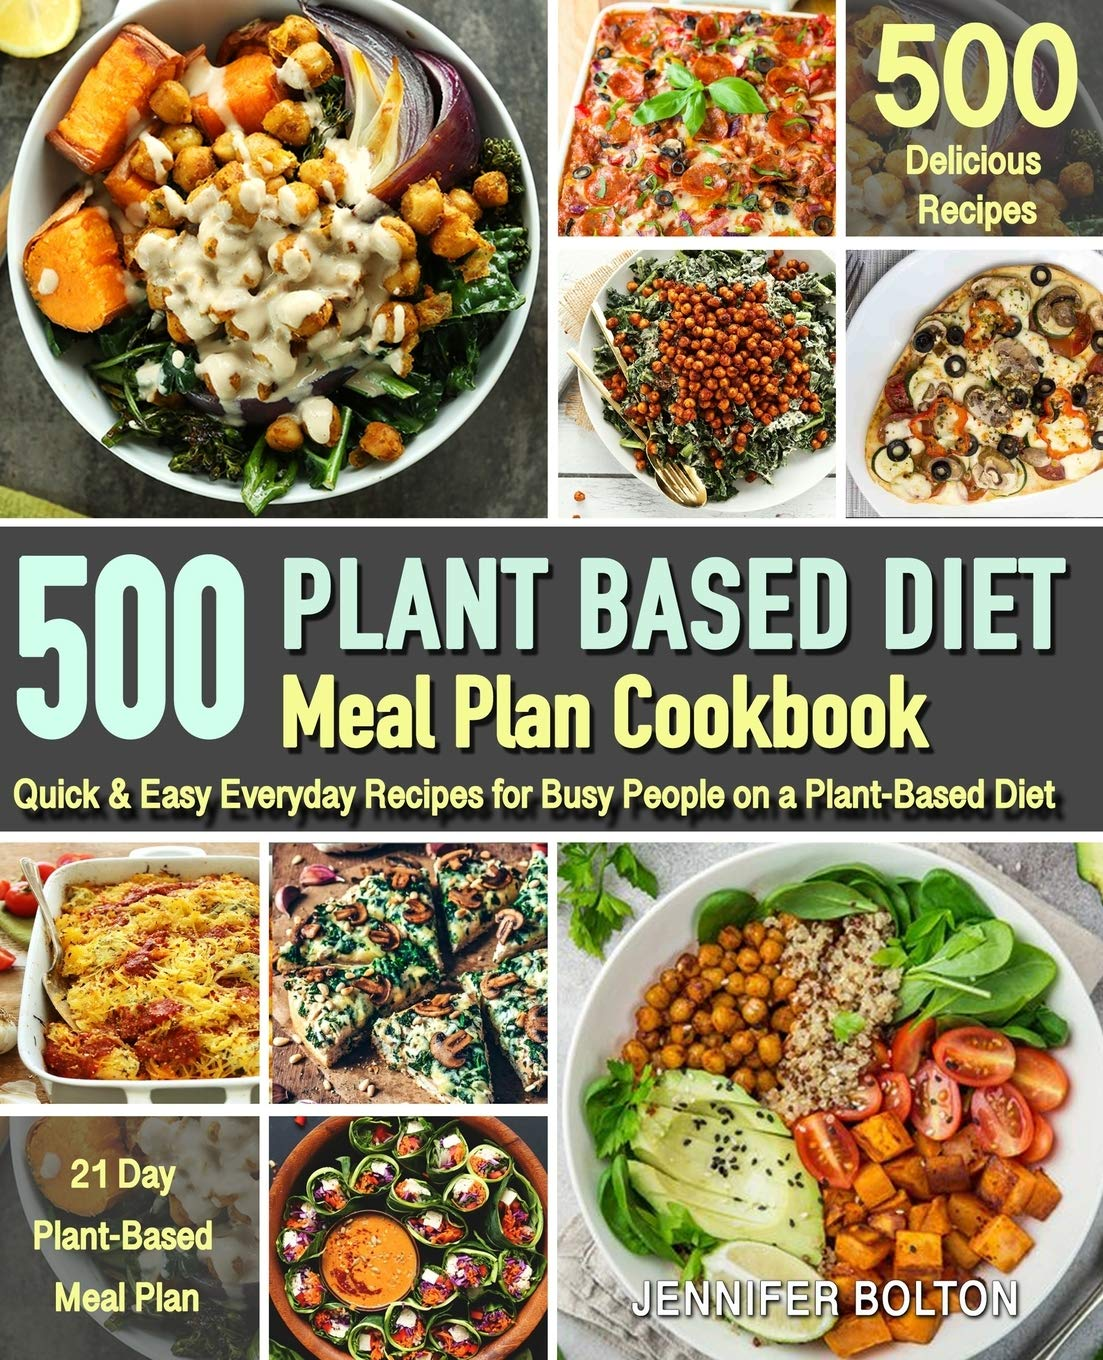 Plant Based Meal Plan Cookbook 500 Quick Easy Everyday Recipes For Busy People On A Plant Based Diet 21 Day Plant Based Meal Plan Plant Based Diet Cookbooks Bolton Jennifer 9781699362952 Amazon Com Books